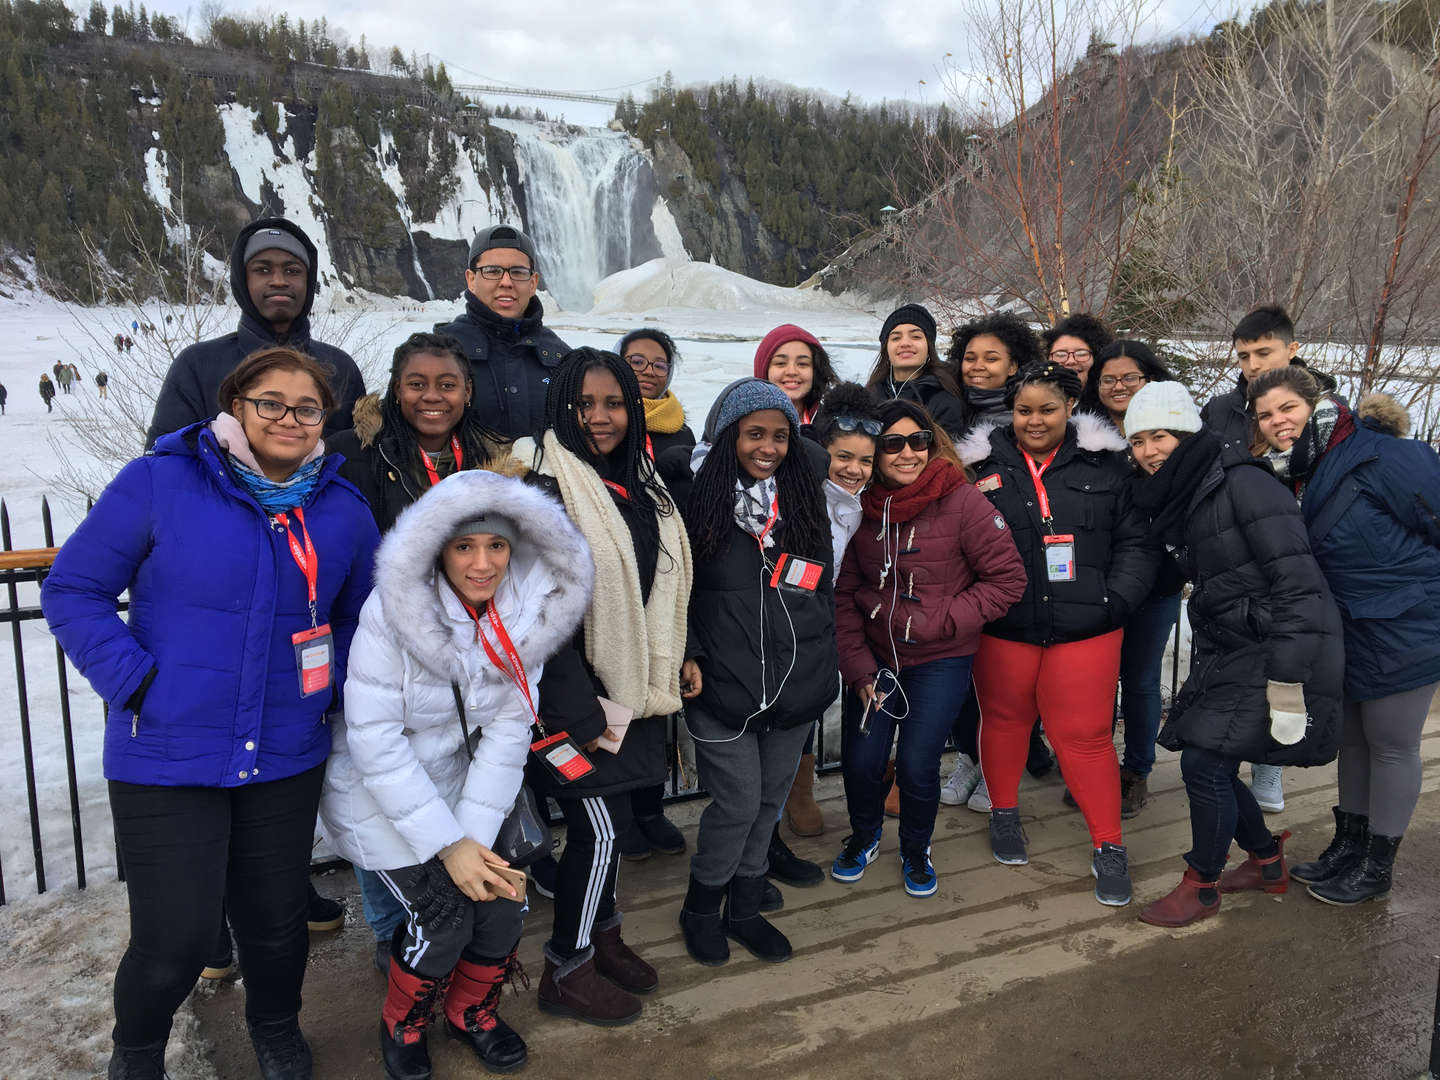 Students on trip in snowy Canada